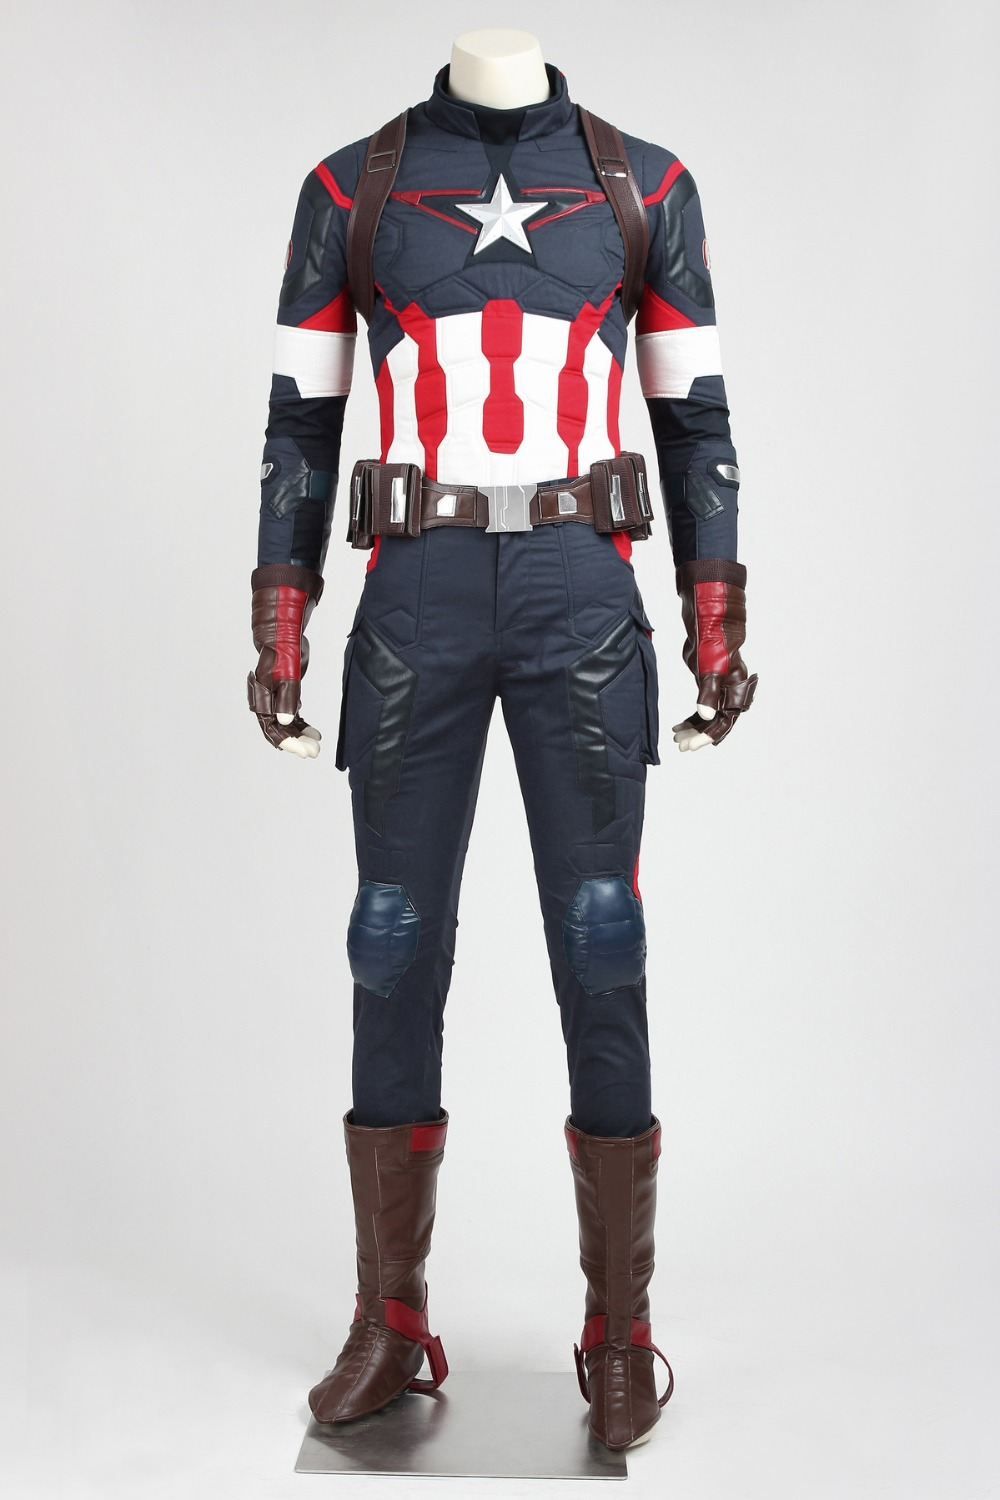 The Avengers: Age Of Ultron Capitan America Costume Cosplay Outfit ...